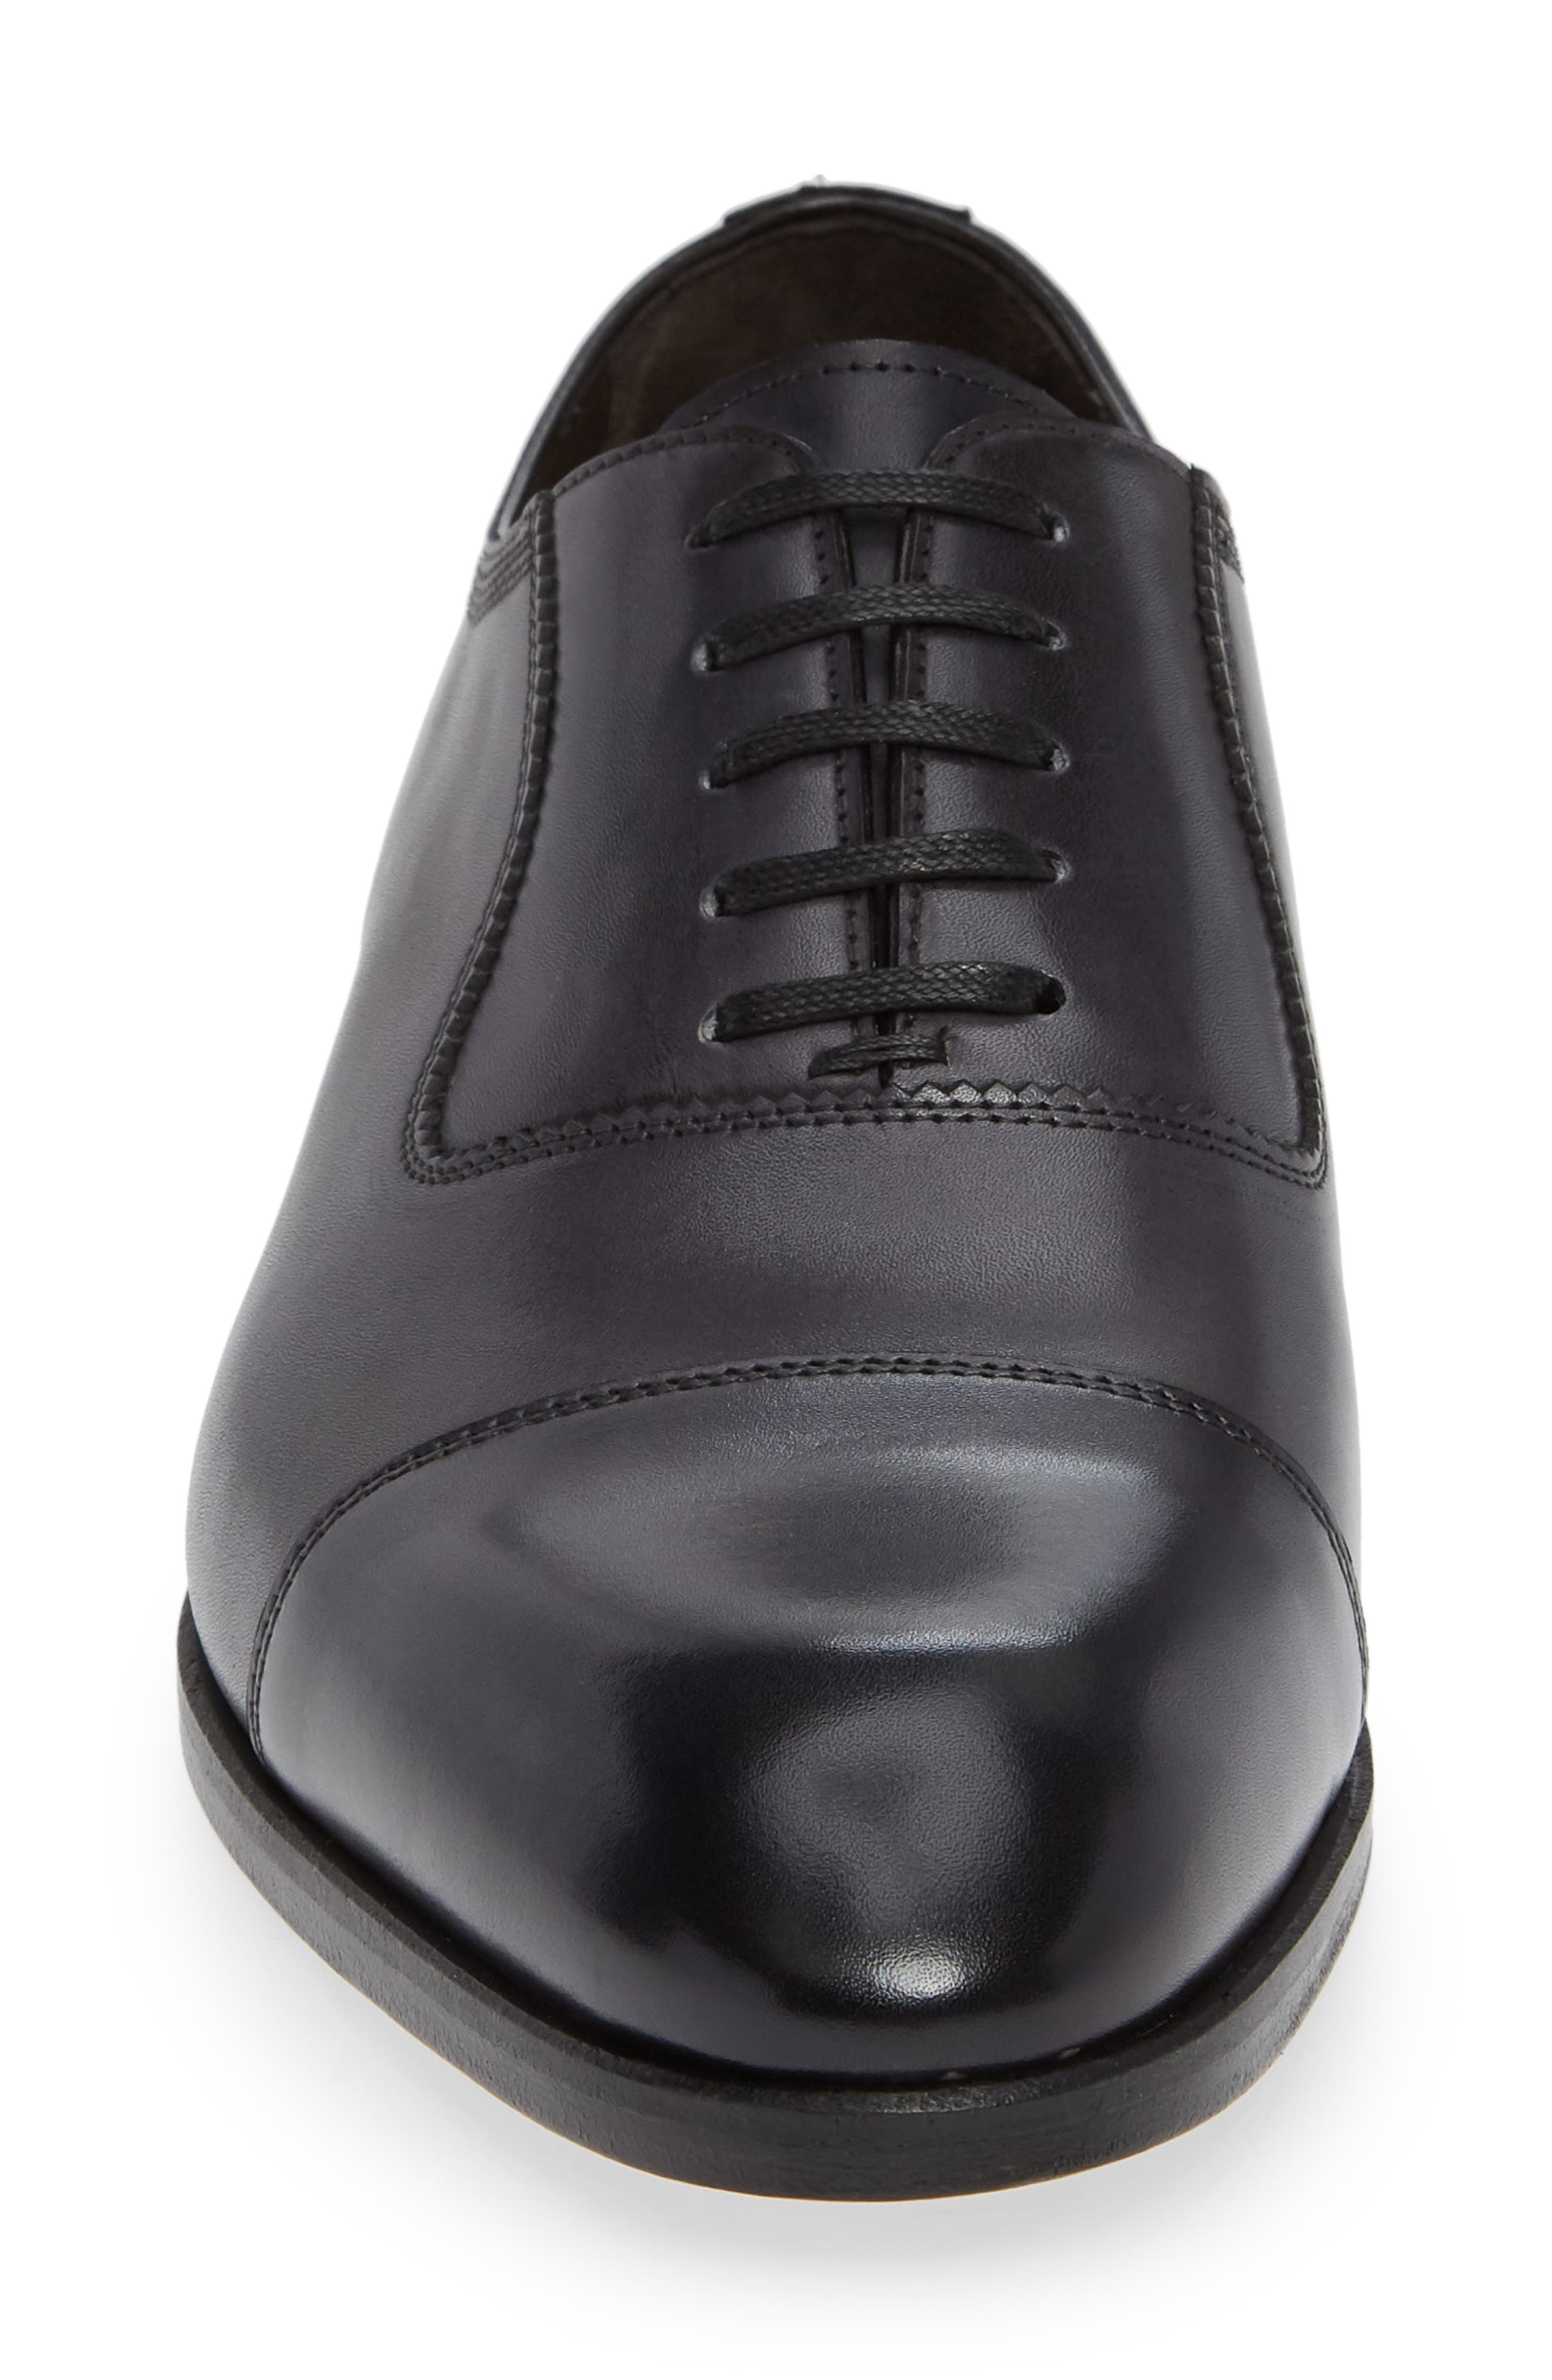 Lucerne Cap Toe Oxford,                             Alternate thumbnail 4, color,                             GREY LEATHER